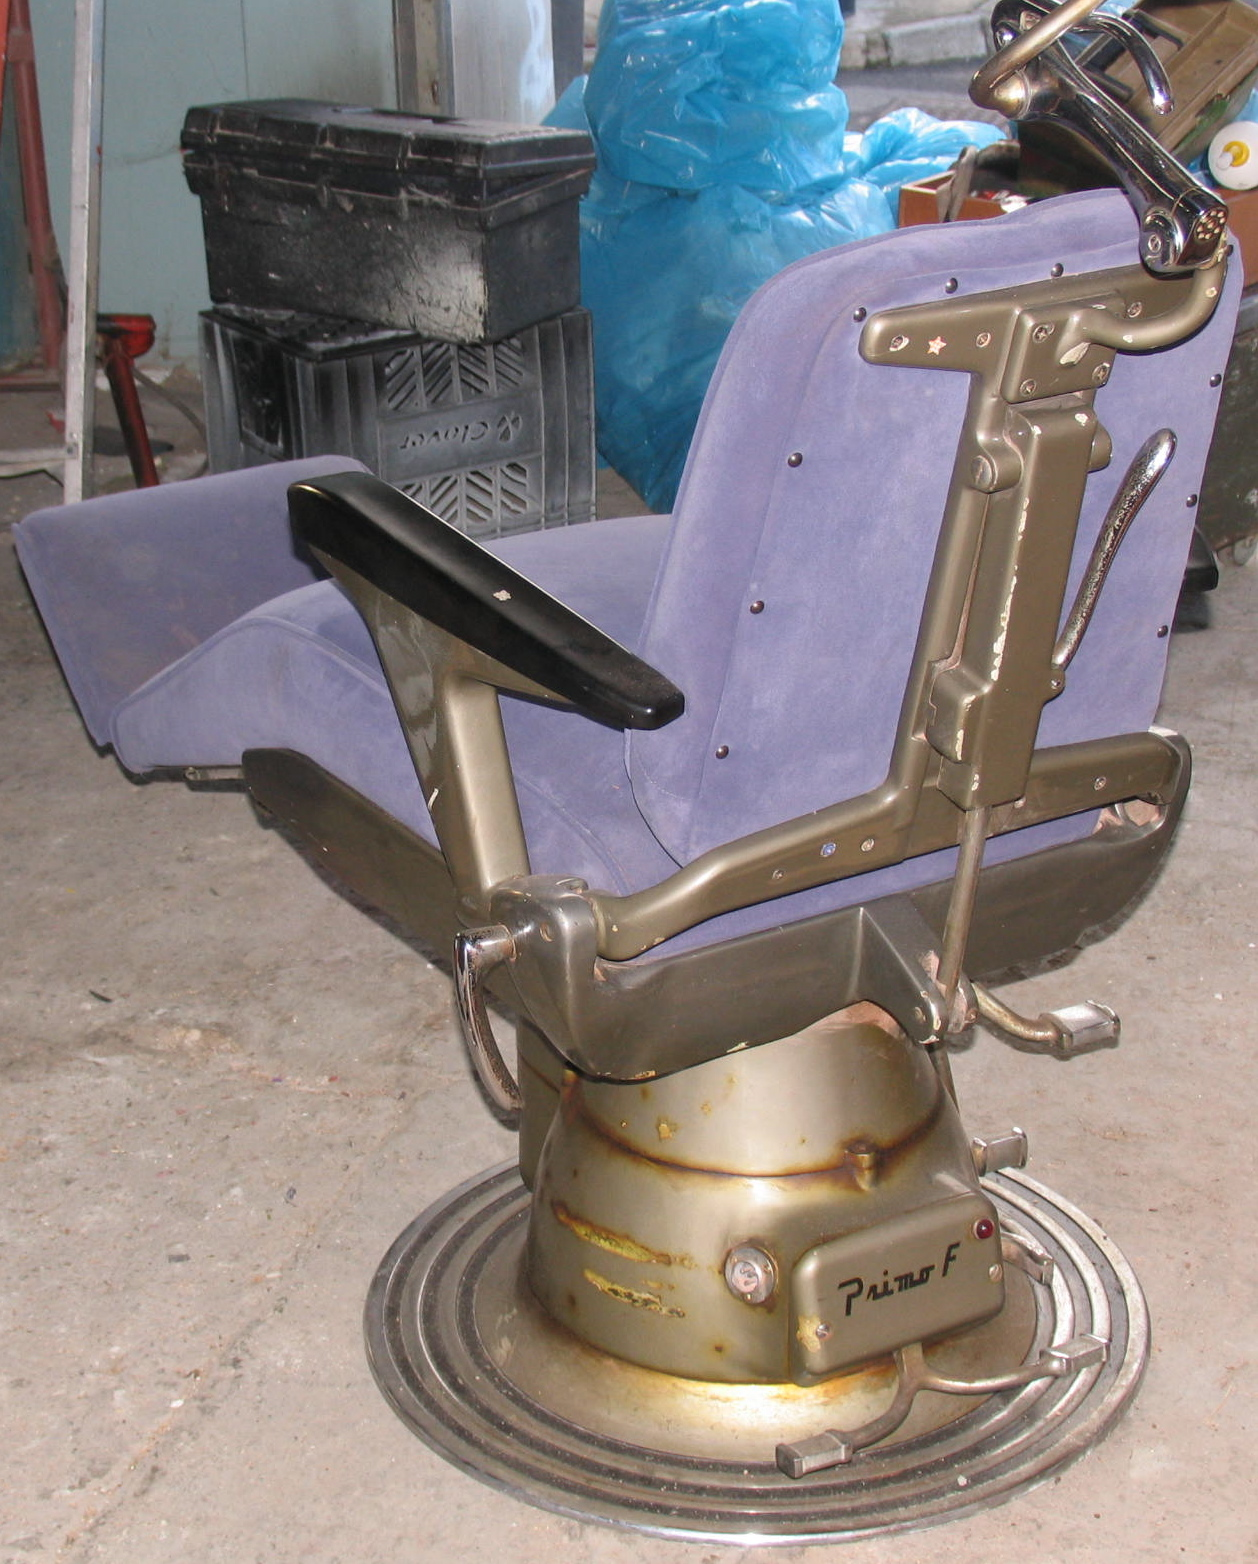 Antique Dentists Chair - Very Rare - 4D Retail: Antique Dentist's Chair For Sale